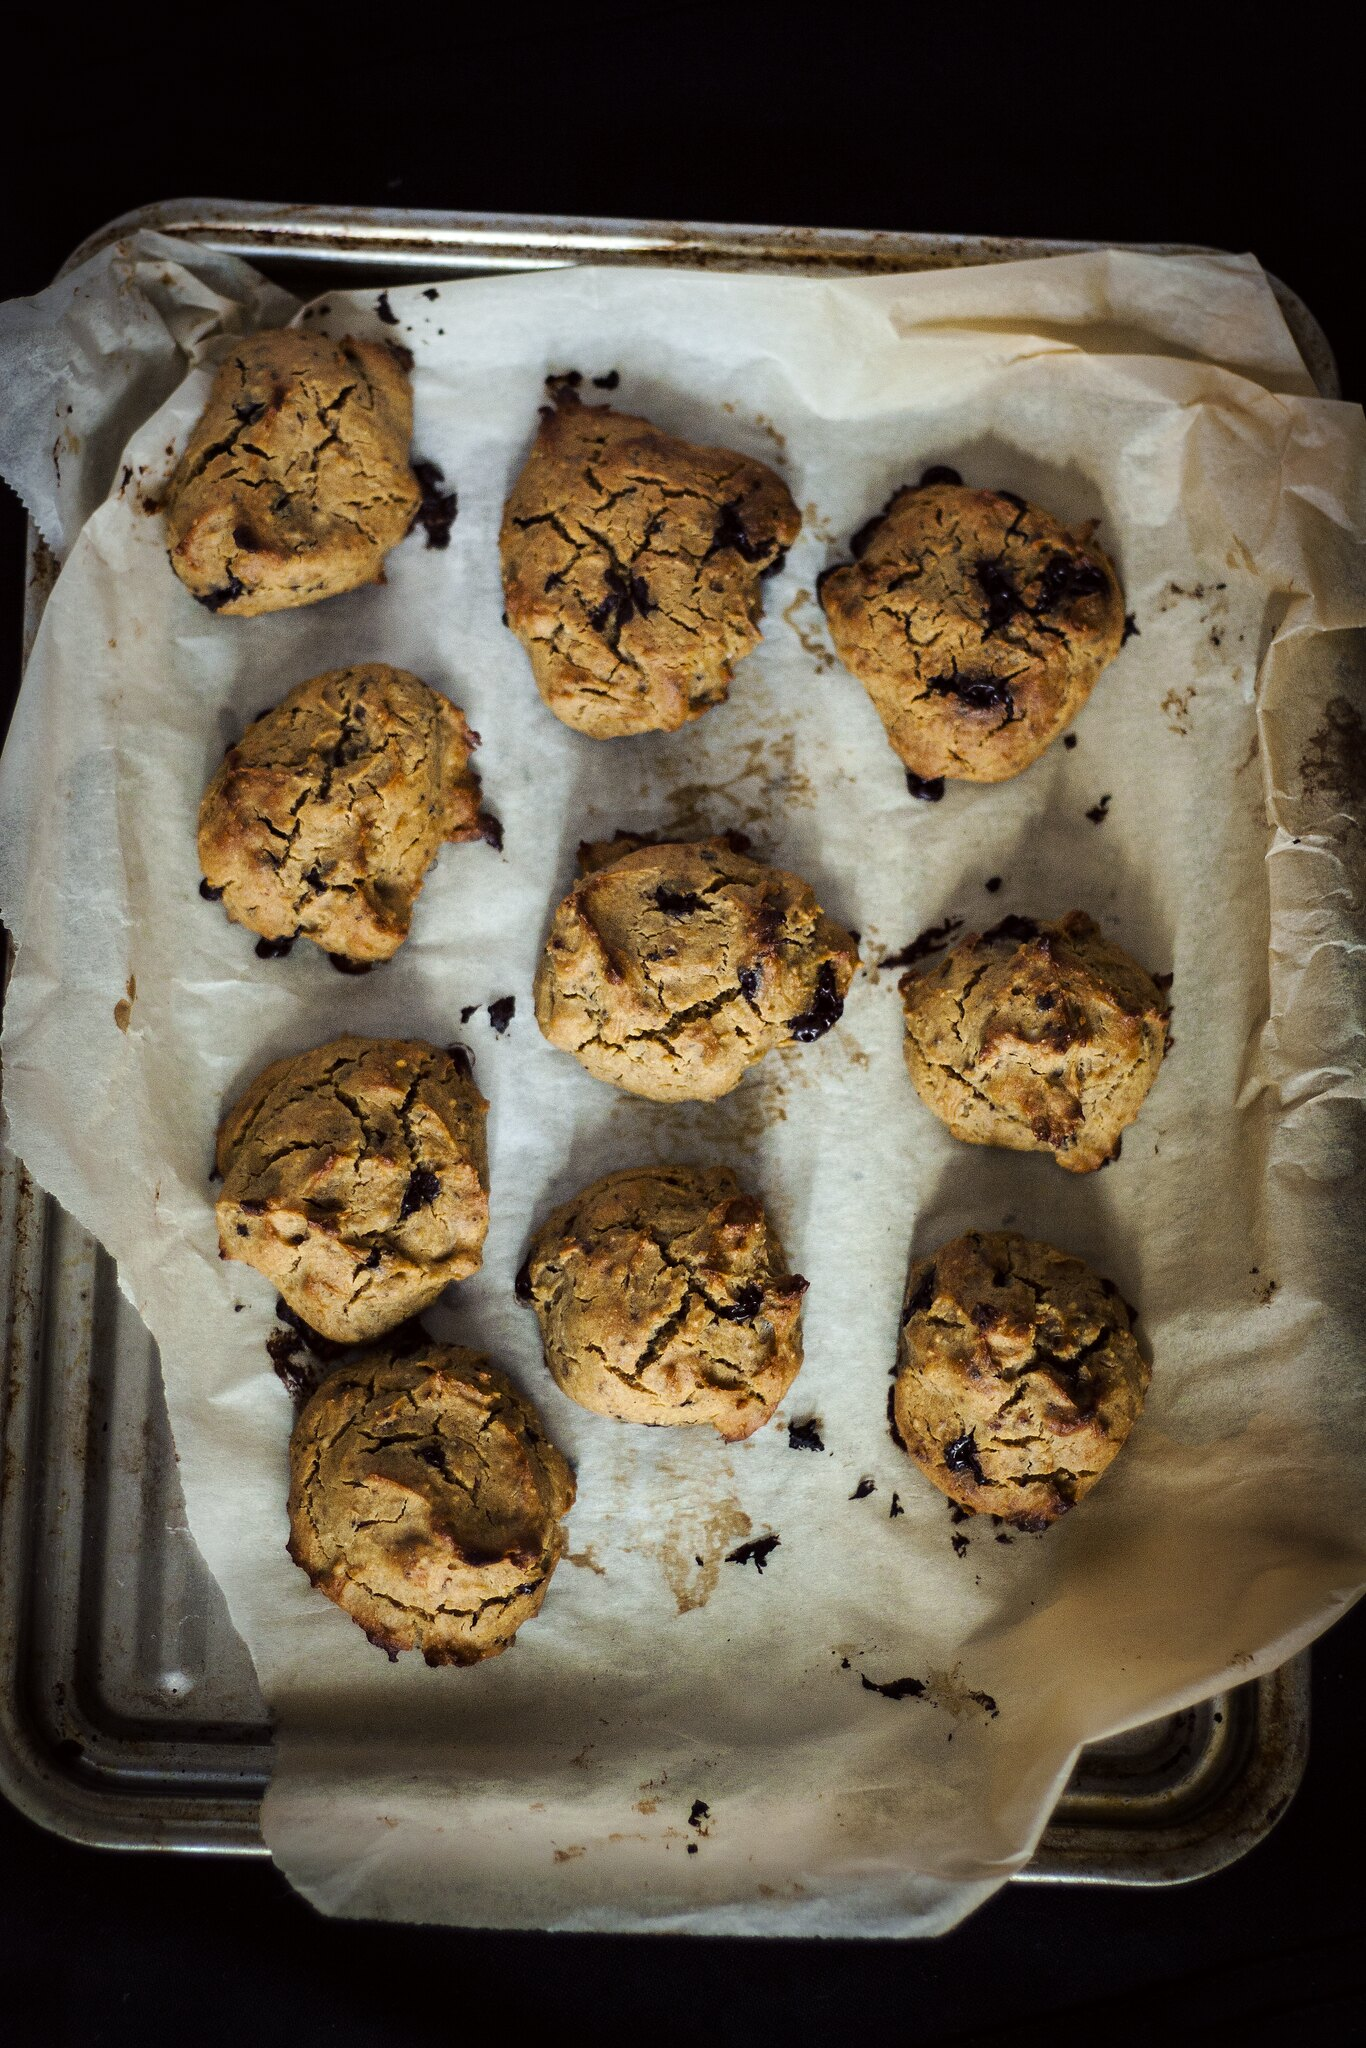 Healthy cookie recipe made of soya, almonds and chocolate chips